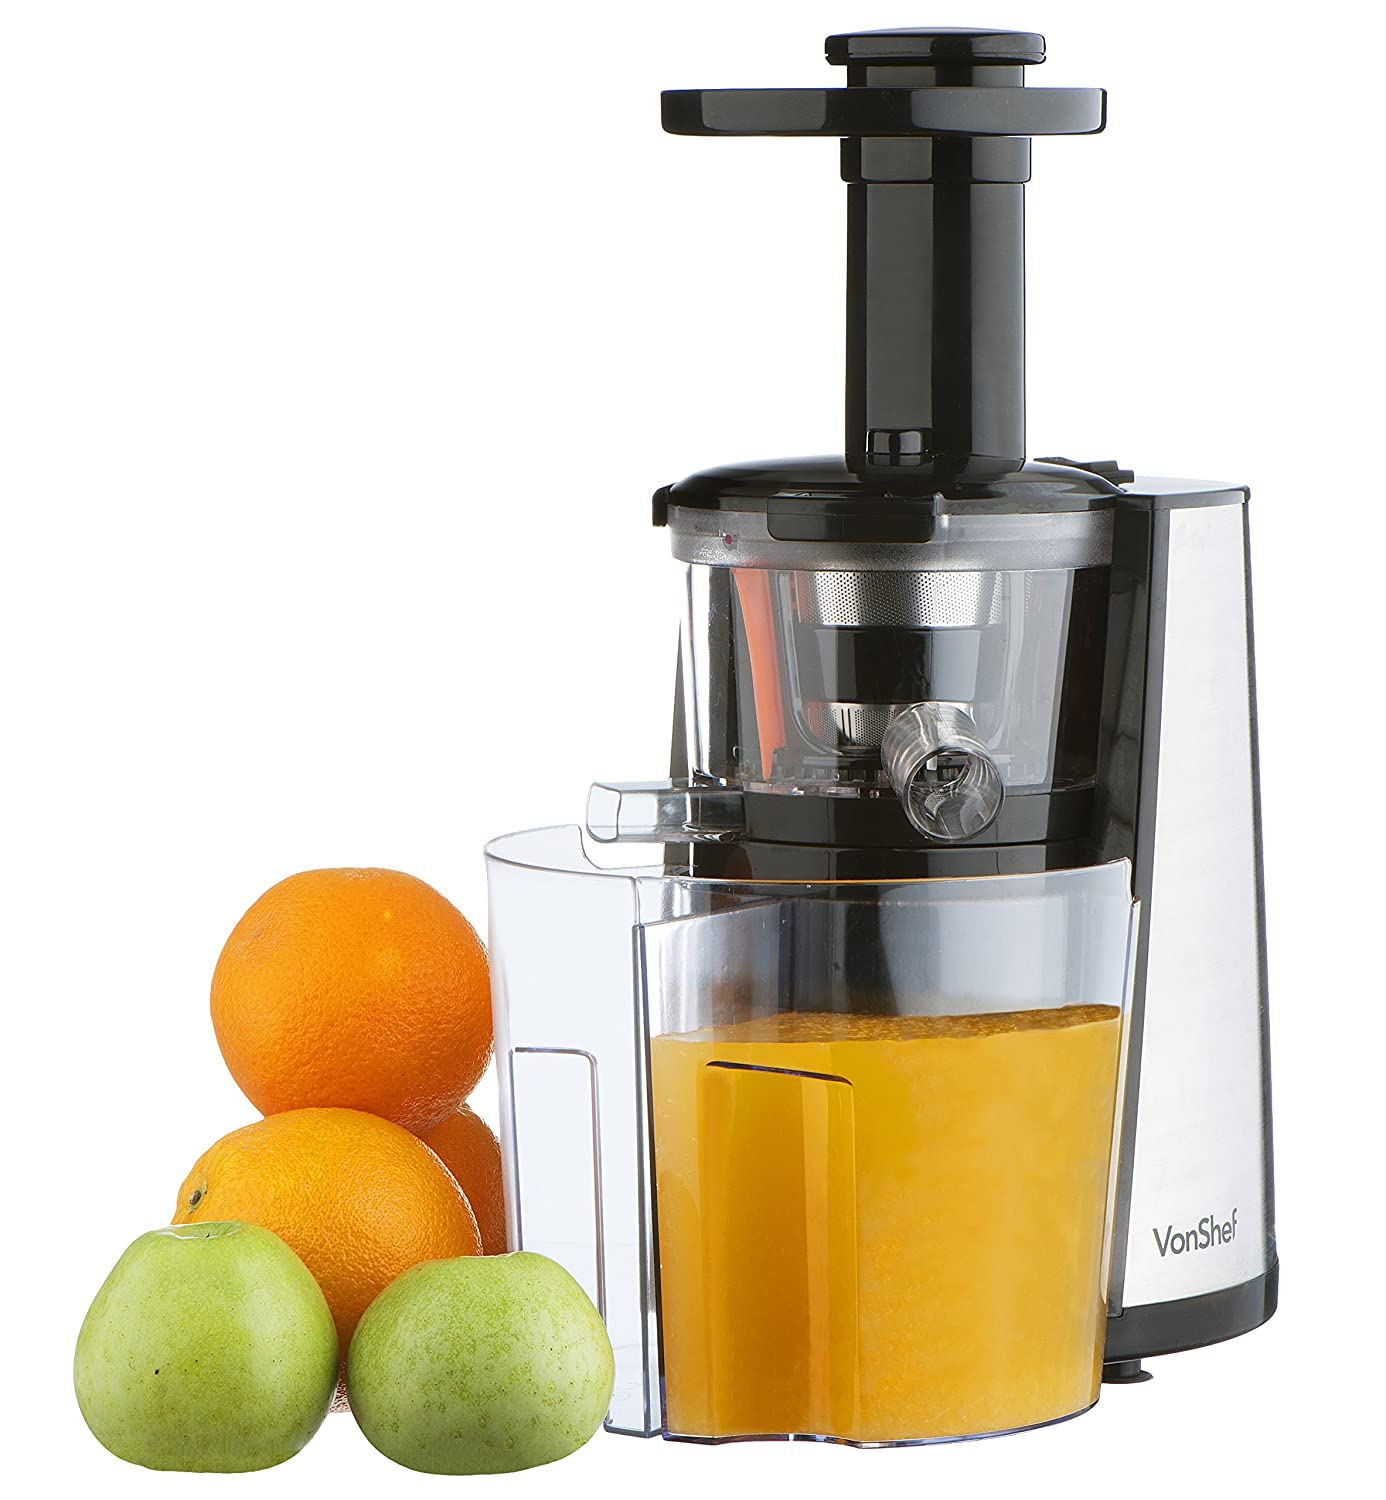 Top Masticating Juicers 2016 : Top 10 Best Masticating Juicers 2016-2017 on Flipboard